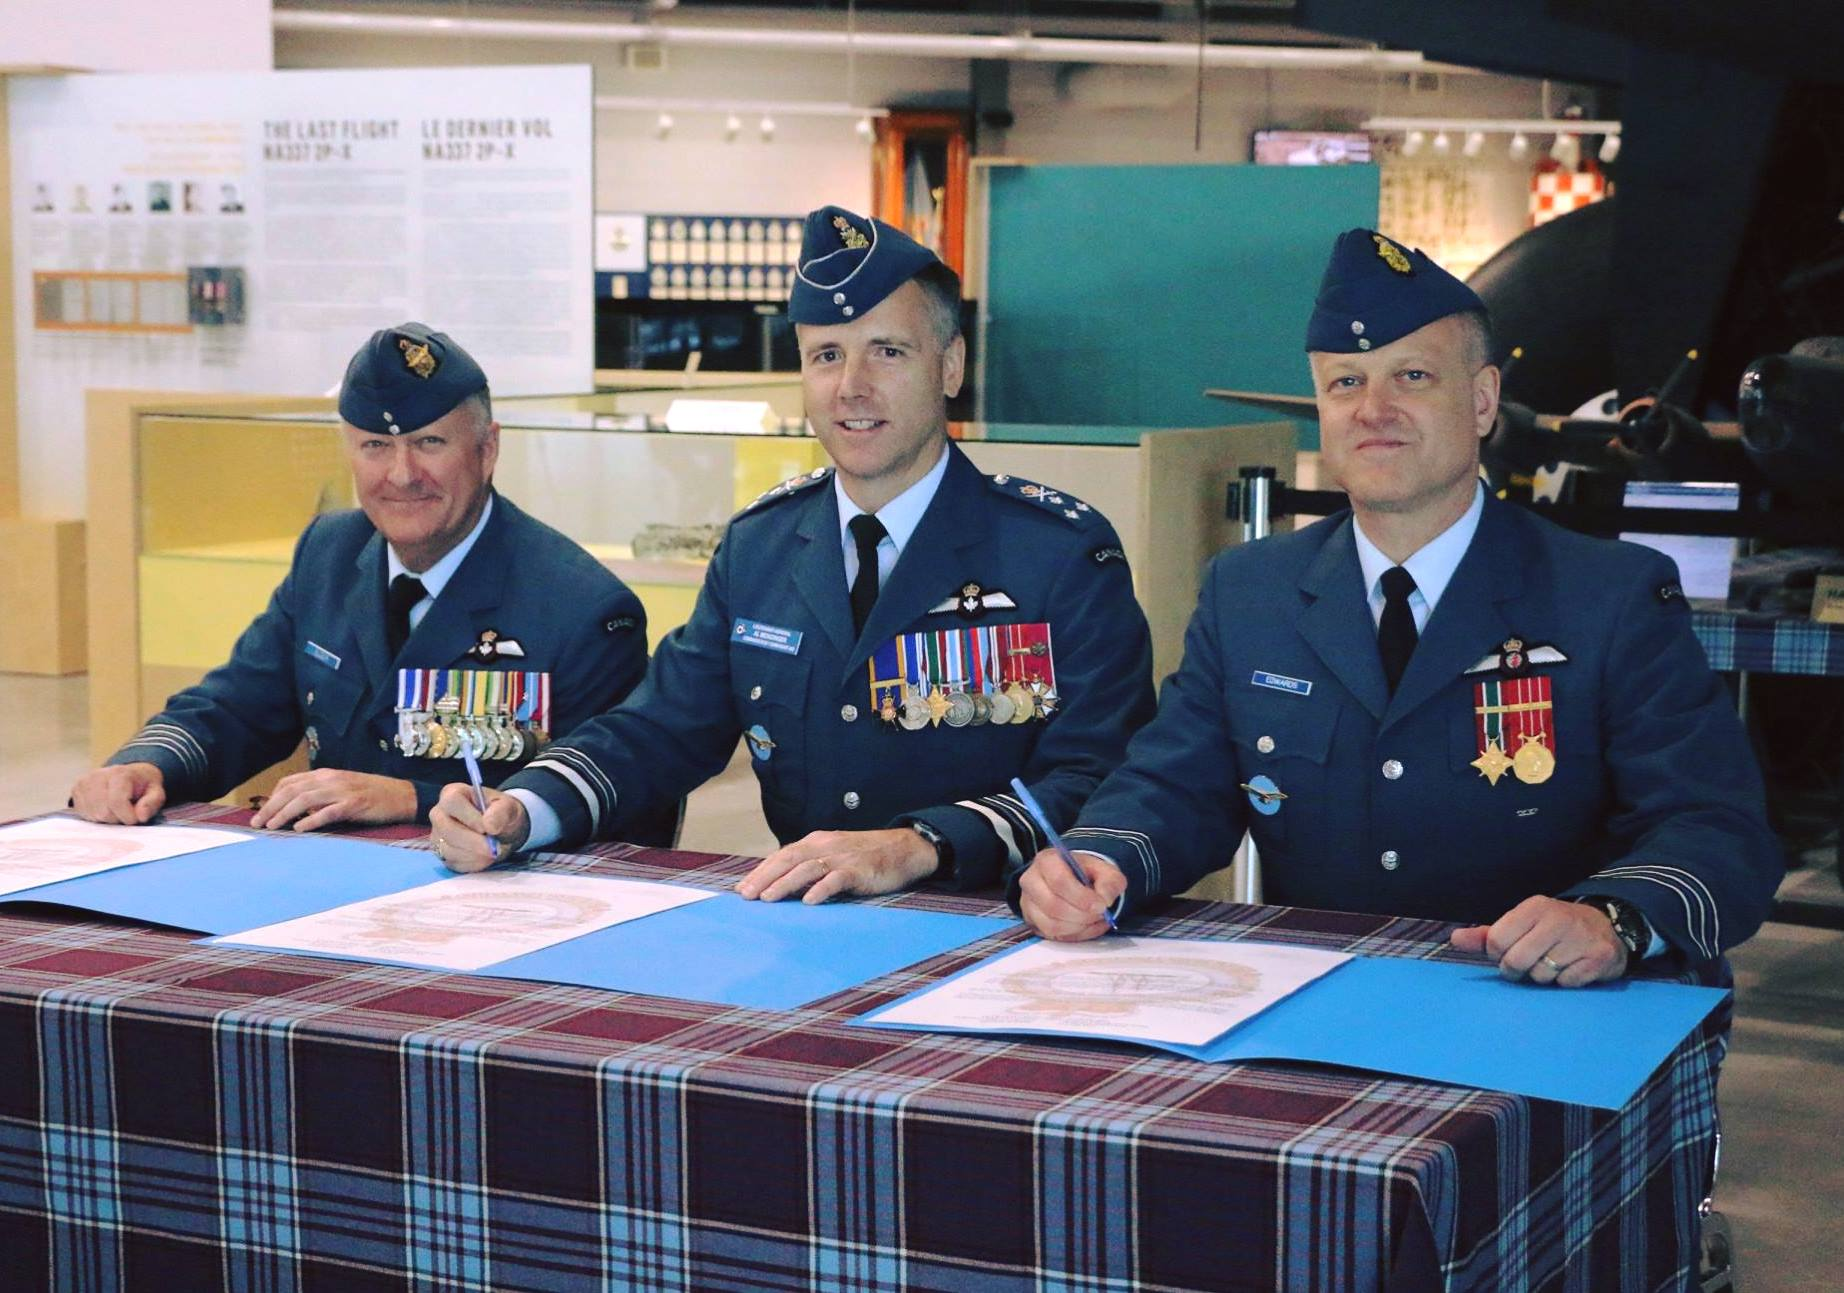 Three men in uniform sit at a tartan-covered table with documents in front of them.